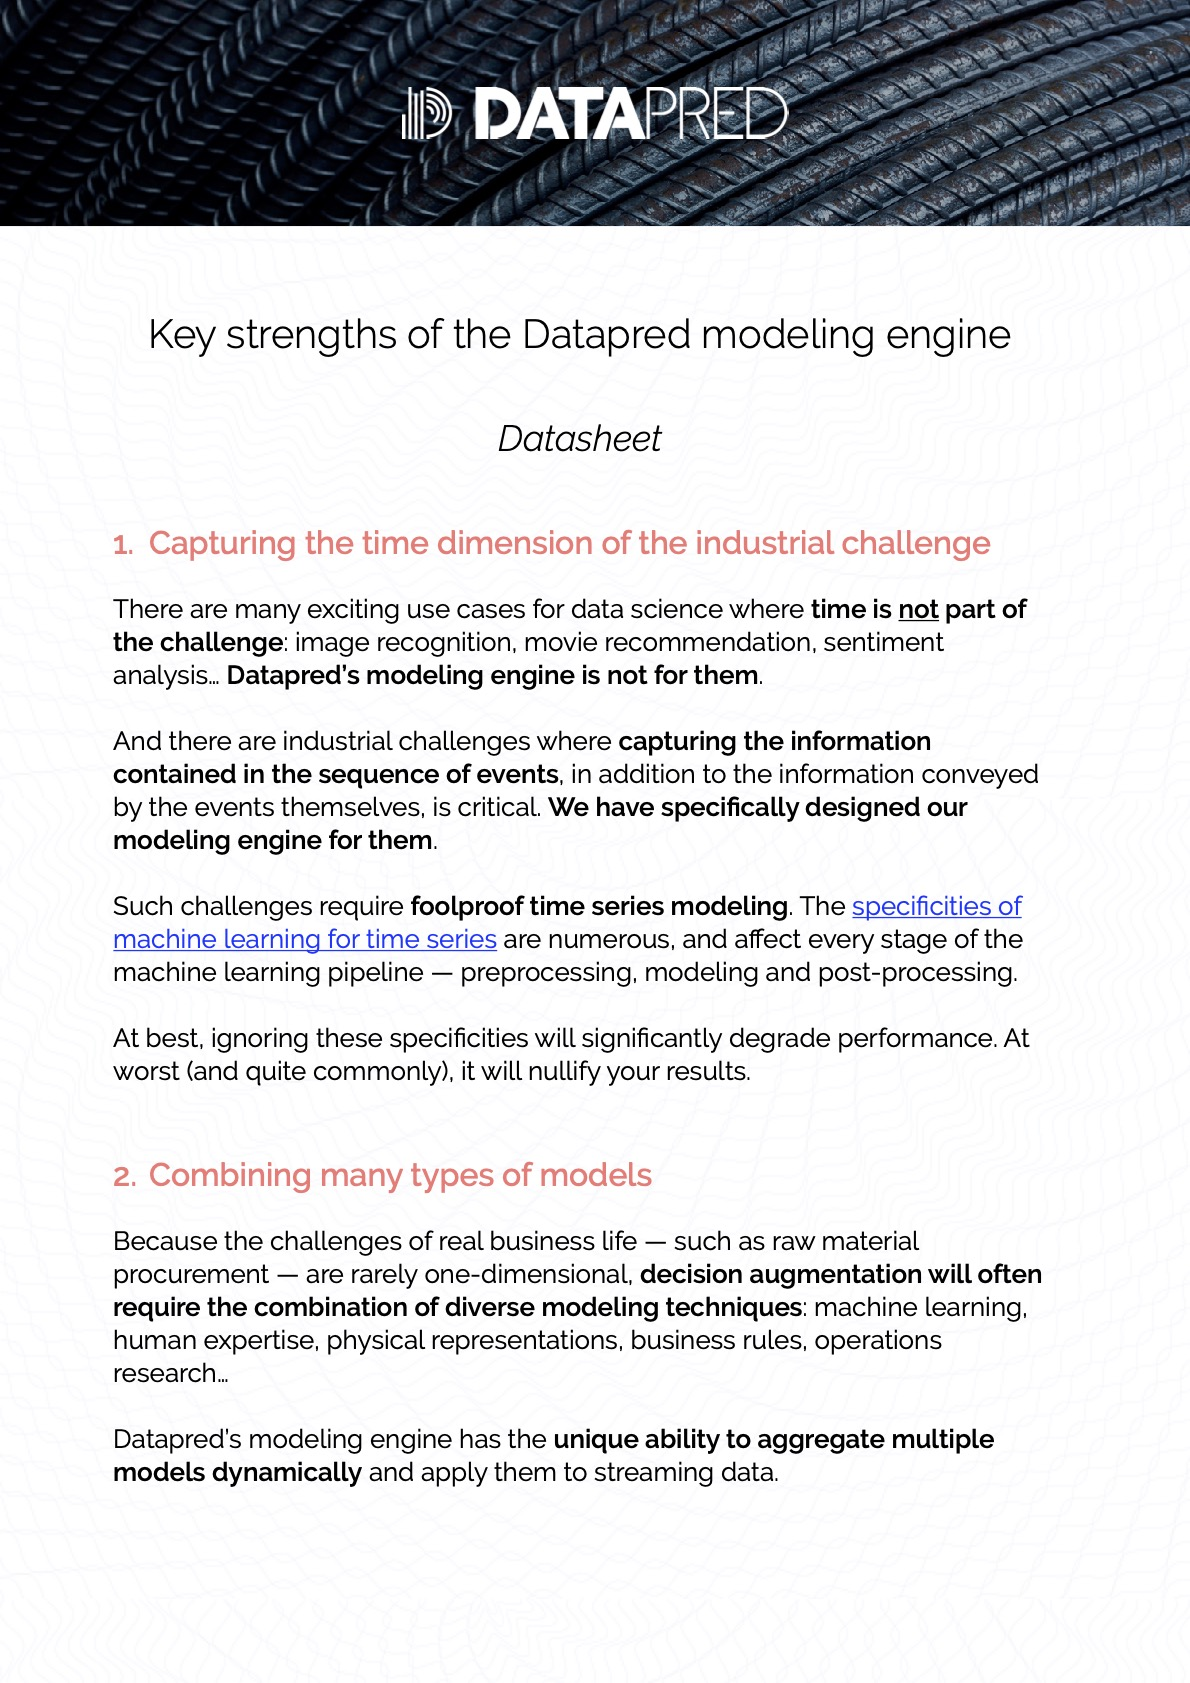 Modeling engine strengths